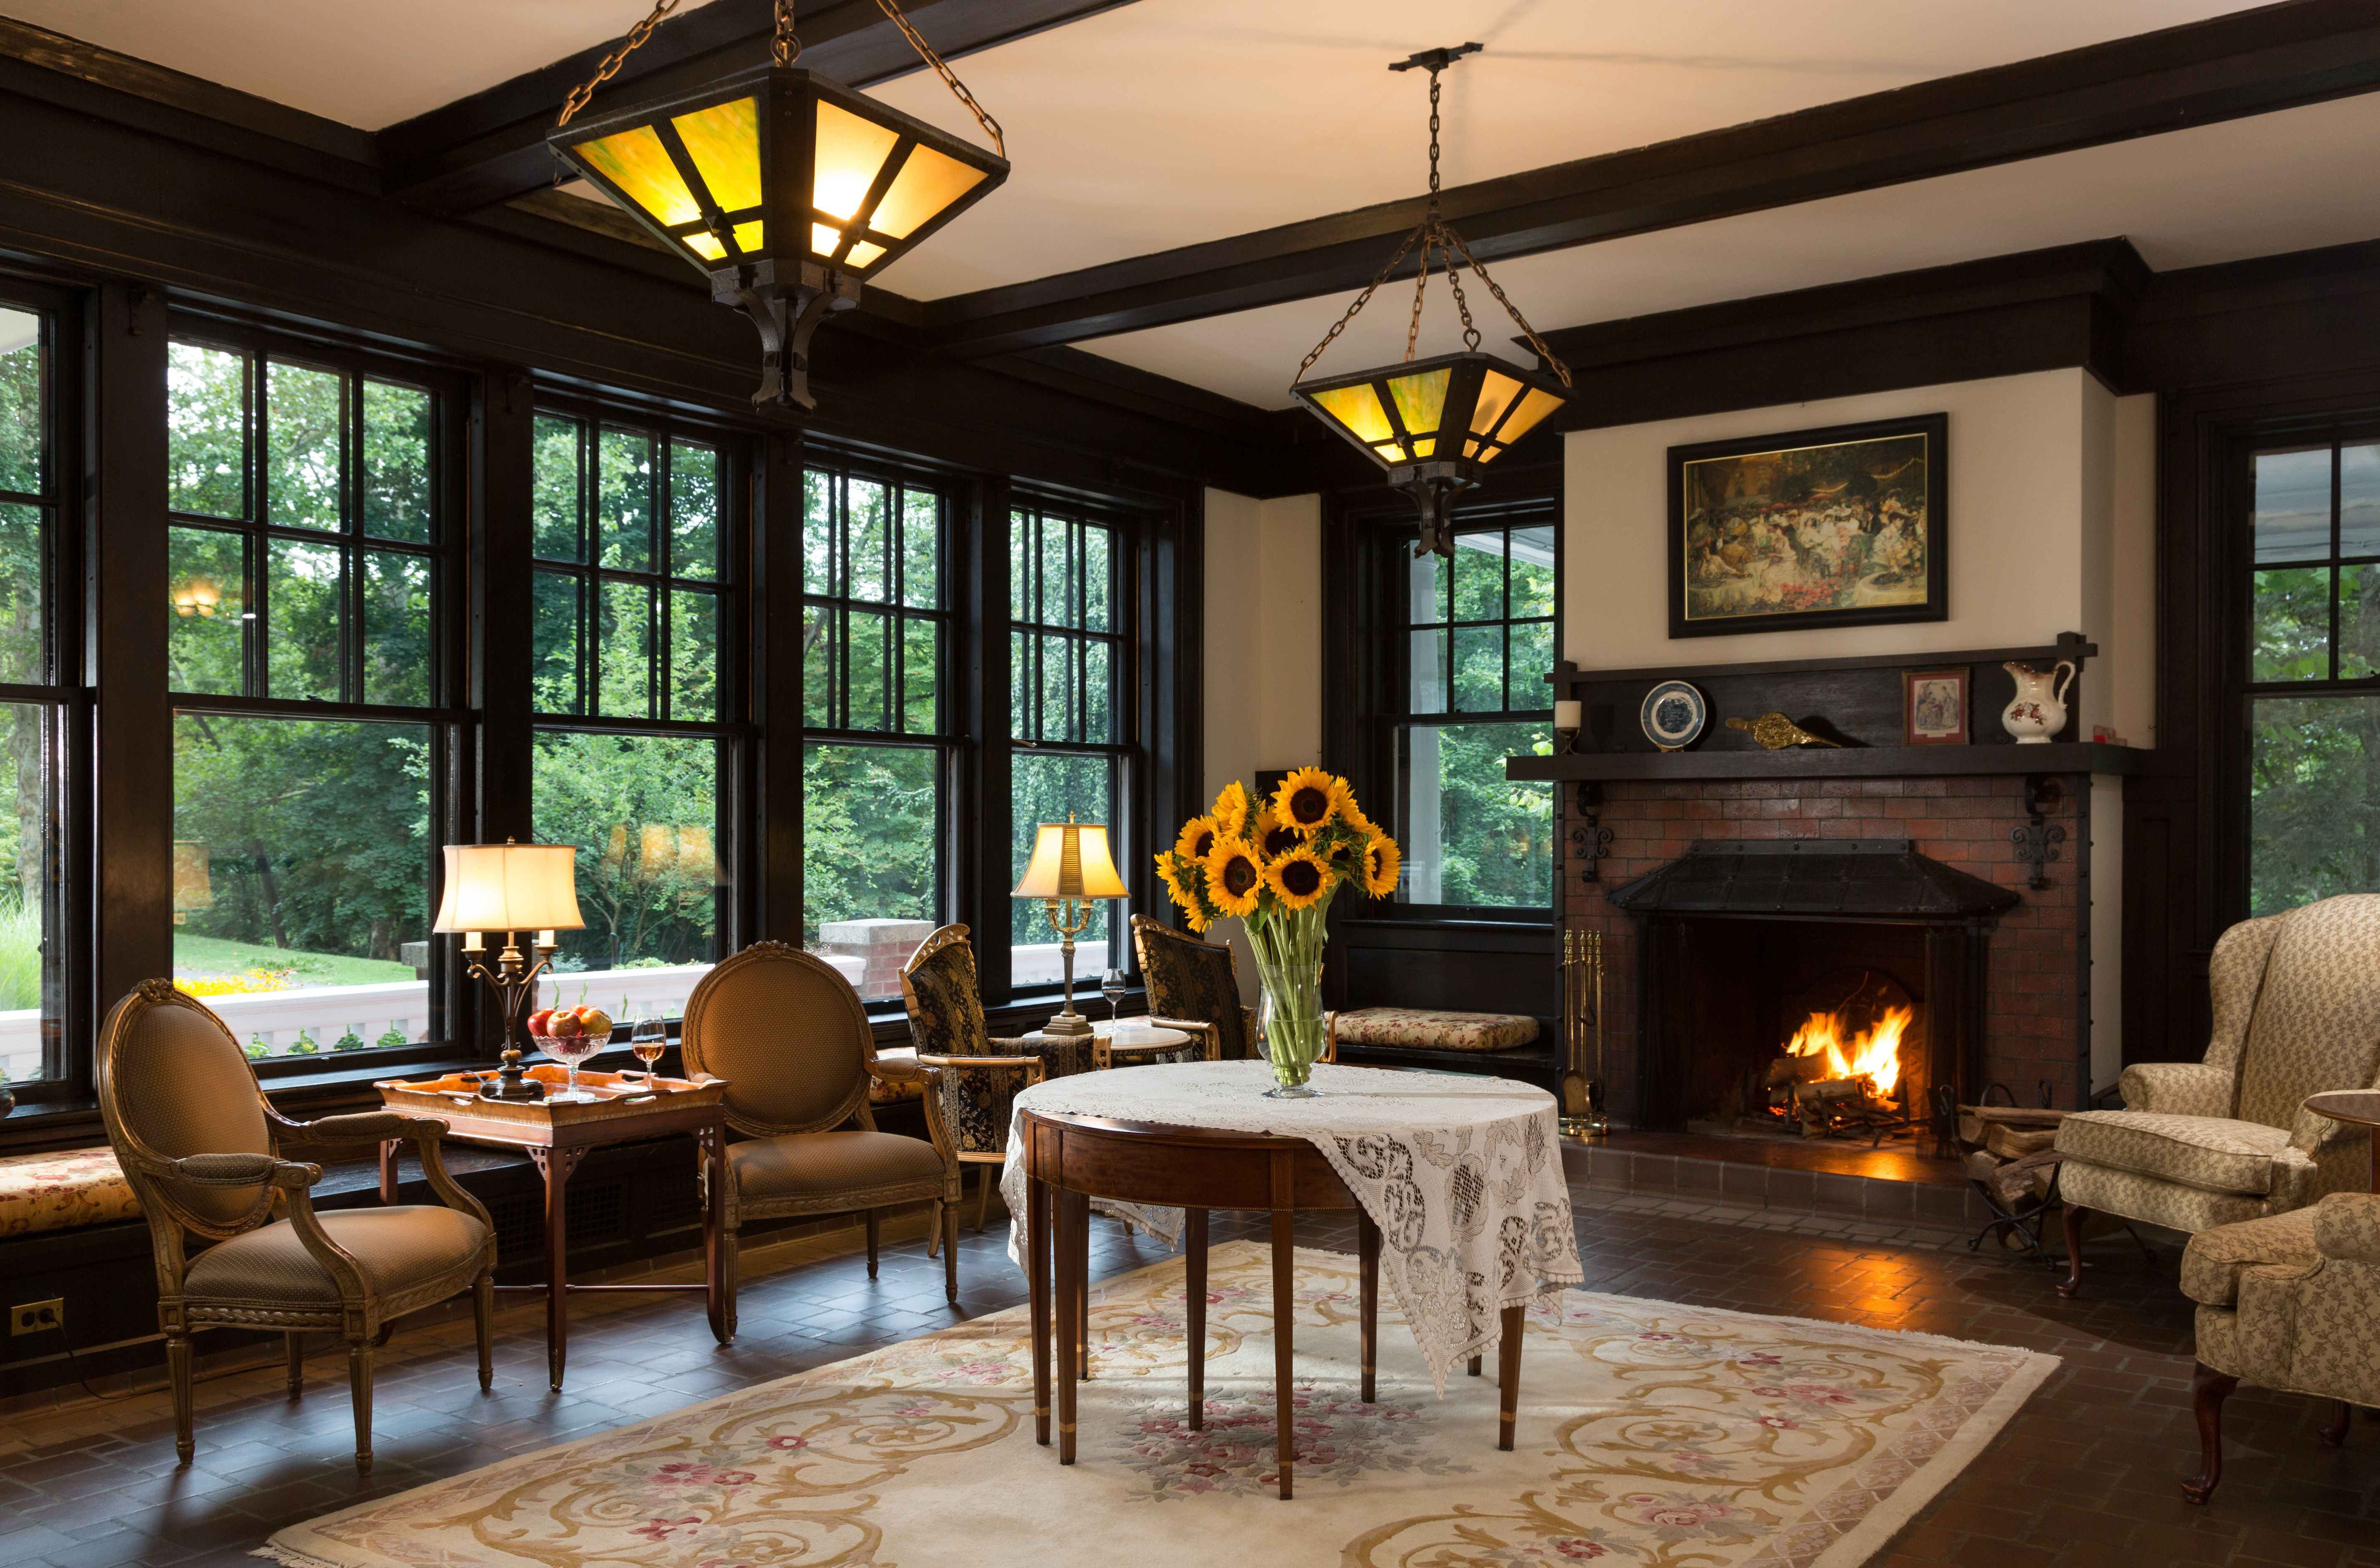 Join us at our top rated Mercersburg bed and breakfast